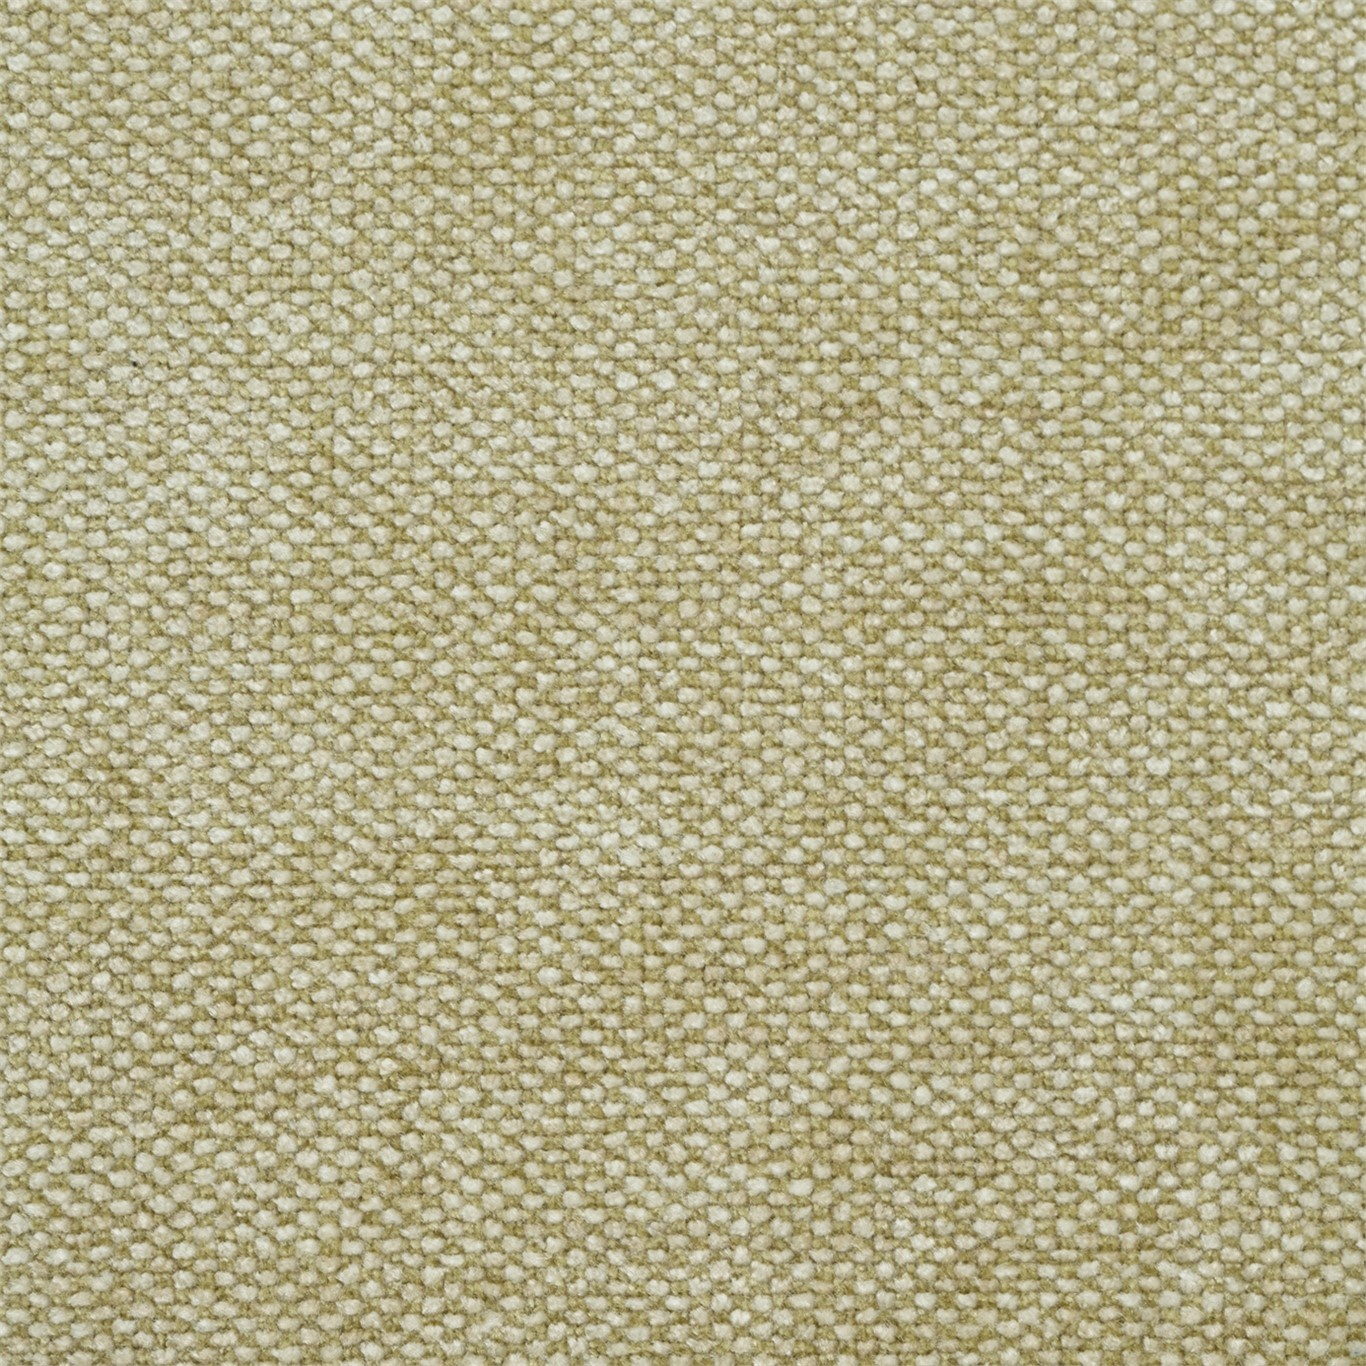 Image of Sanderson Moorbank Barley Fabric 236296